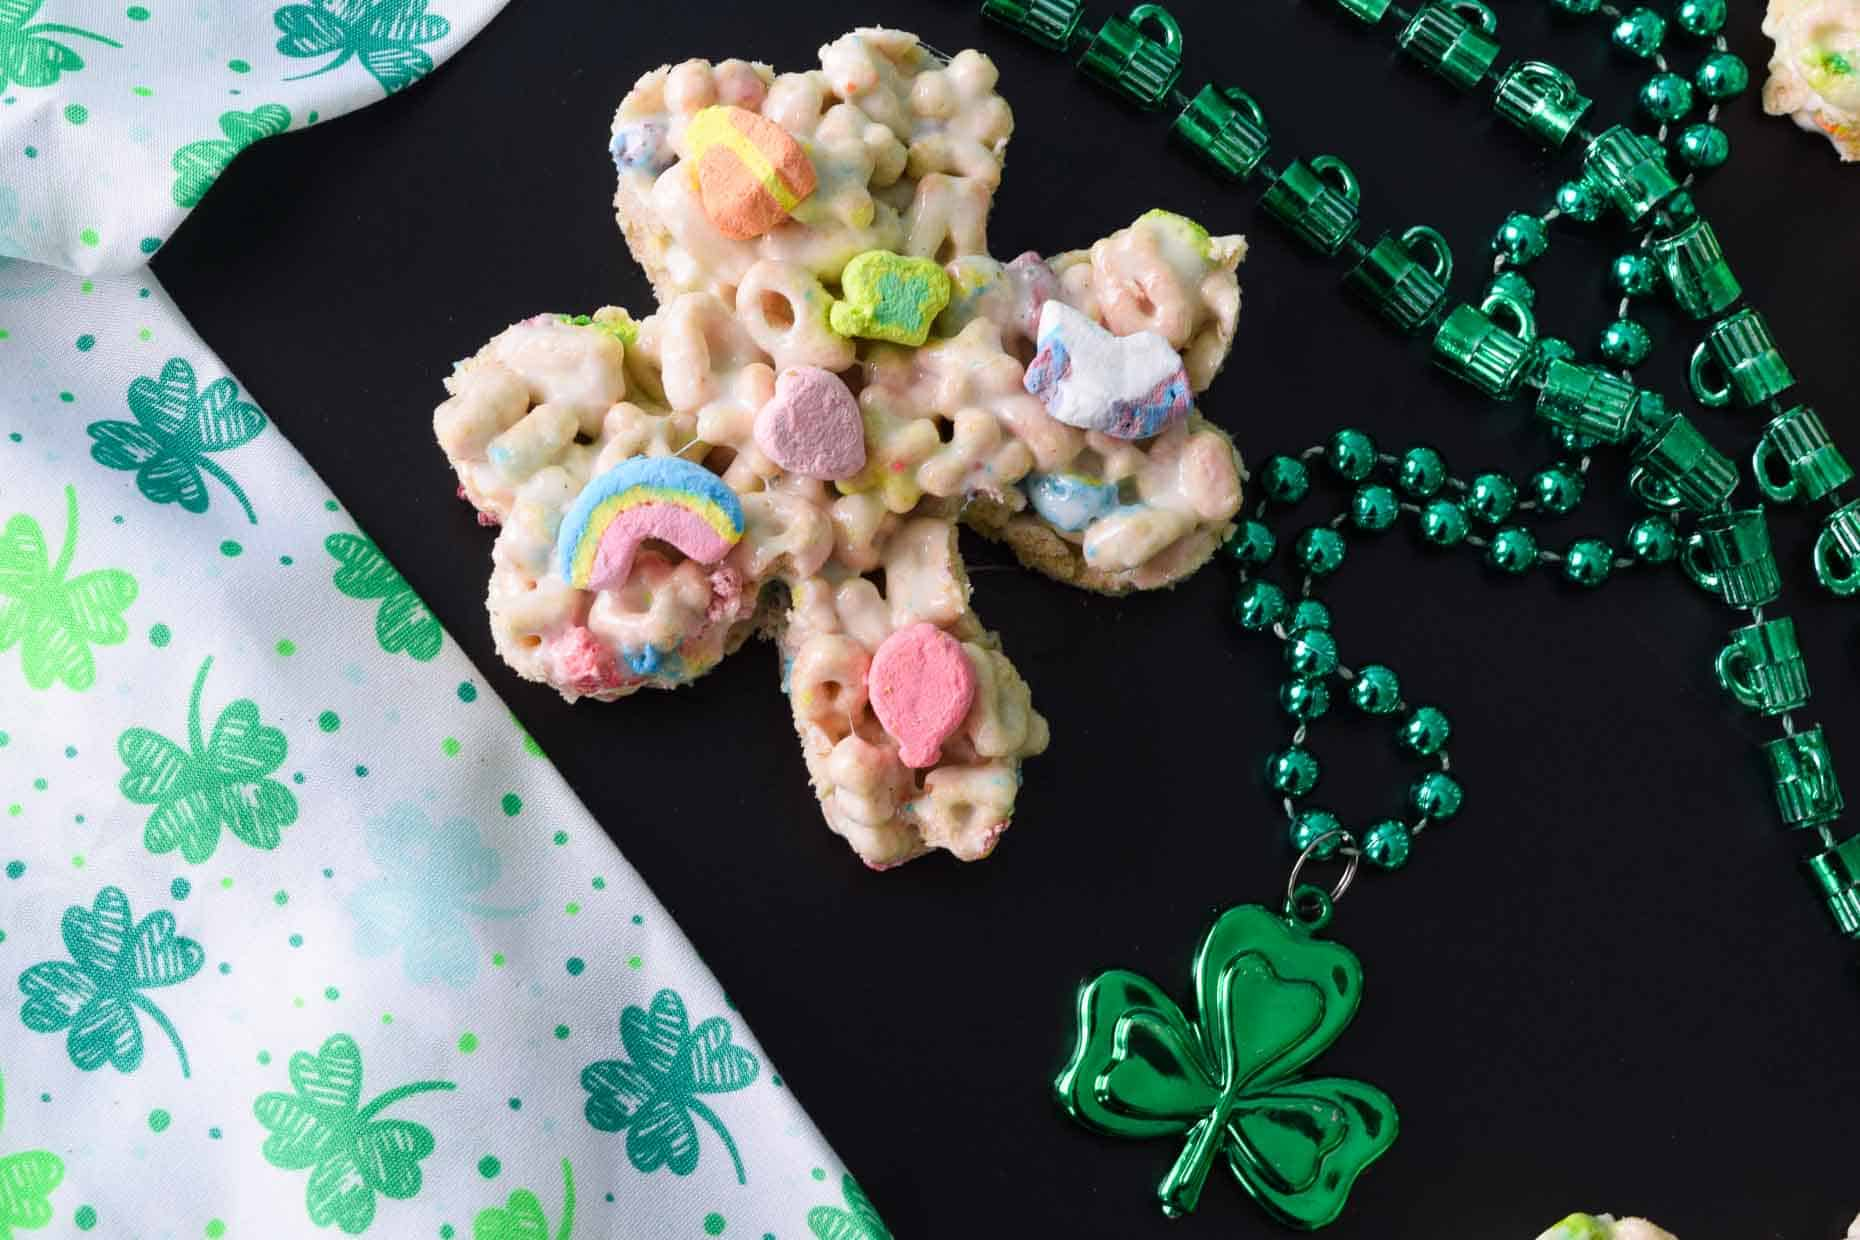 Lucky Charm Treat shaped like a cover with St. Patrick's day scarf and necklace close up view